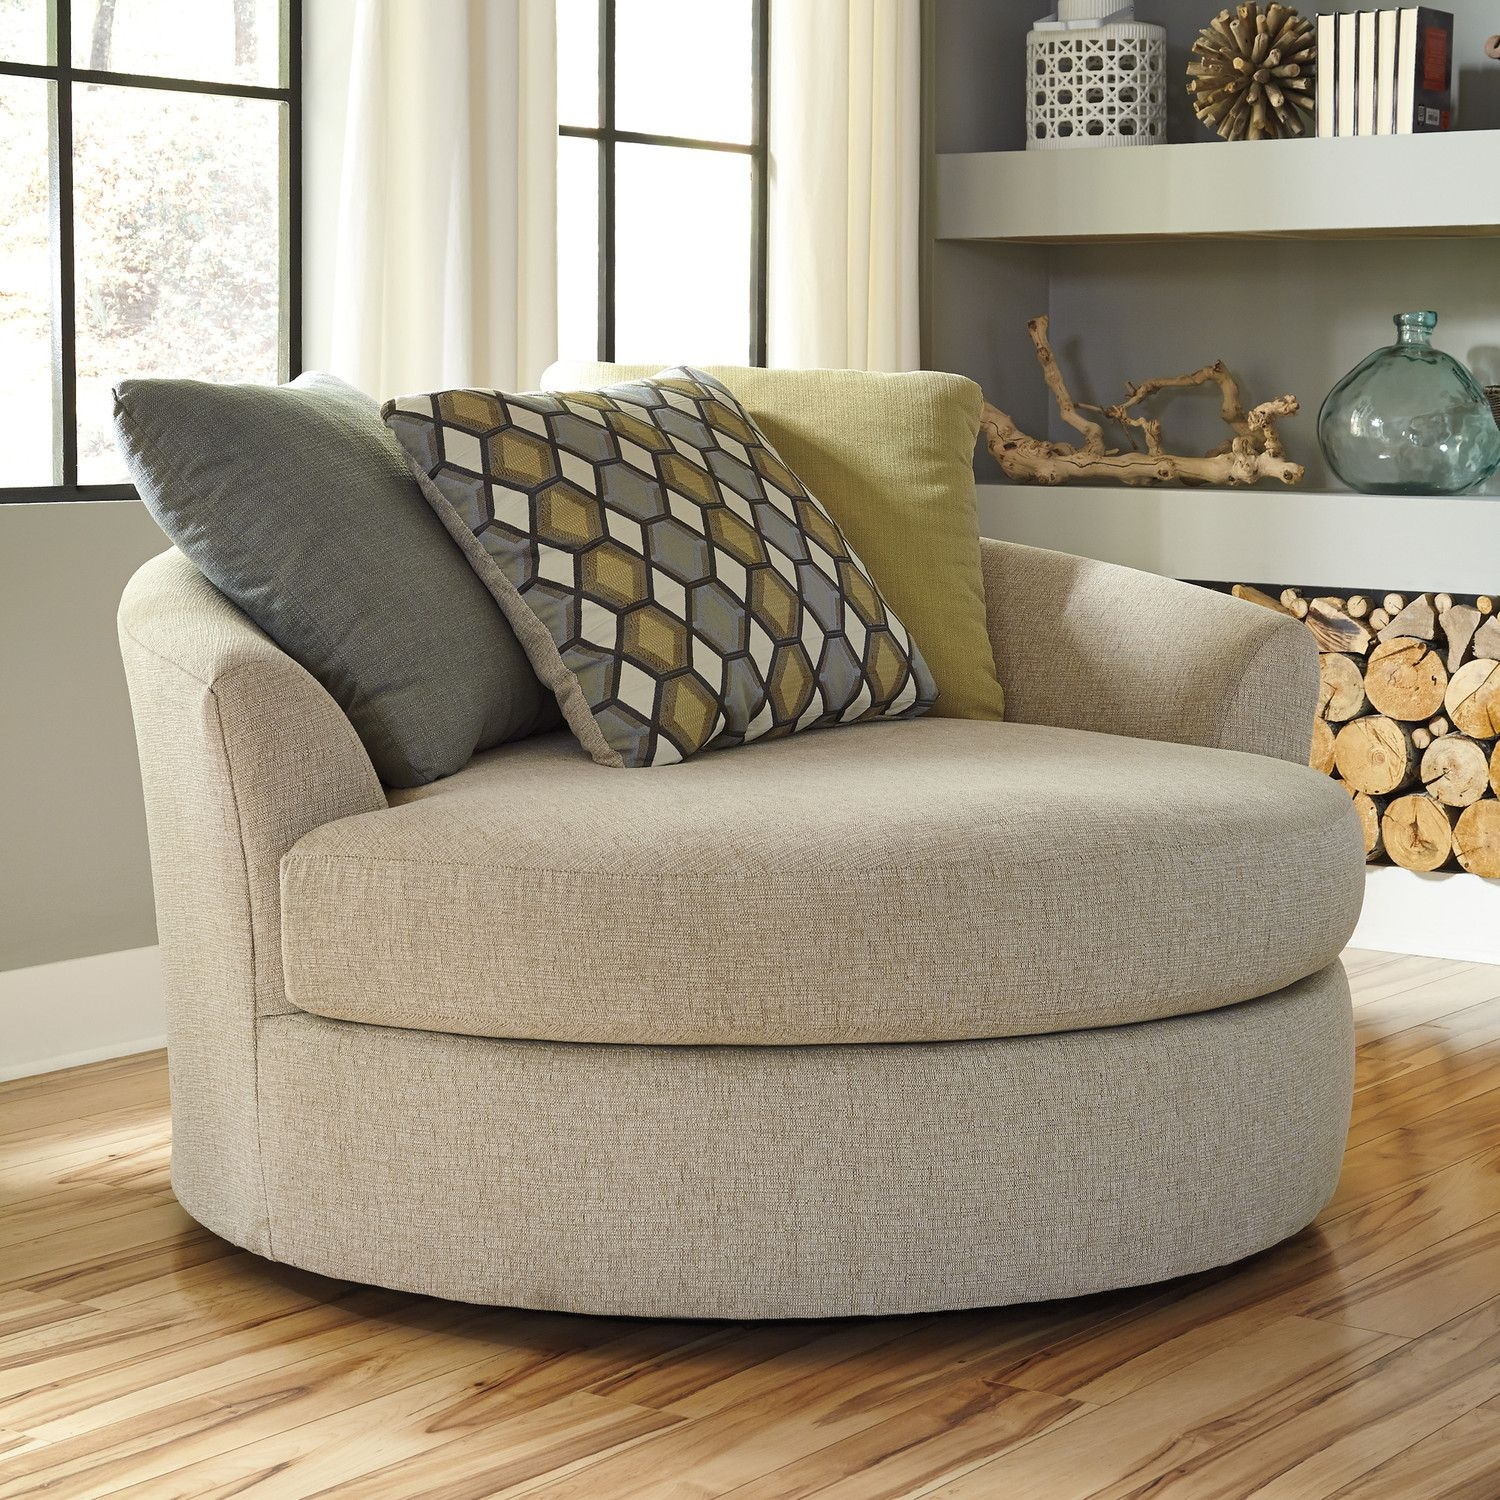 25 Example World Market Maddox Chair | Galleryeptune Inside Maddox Oversized Sofa Chairs (Photo 4 of 20)